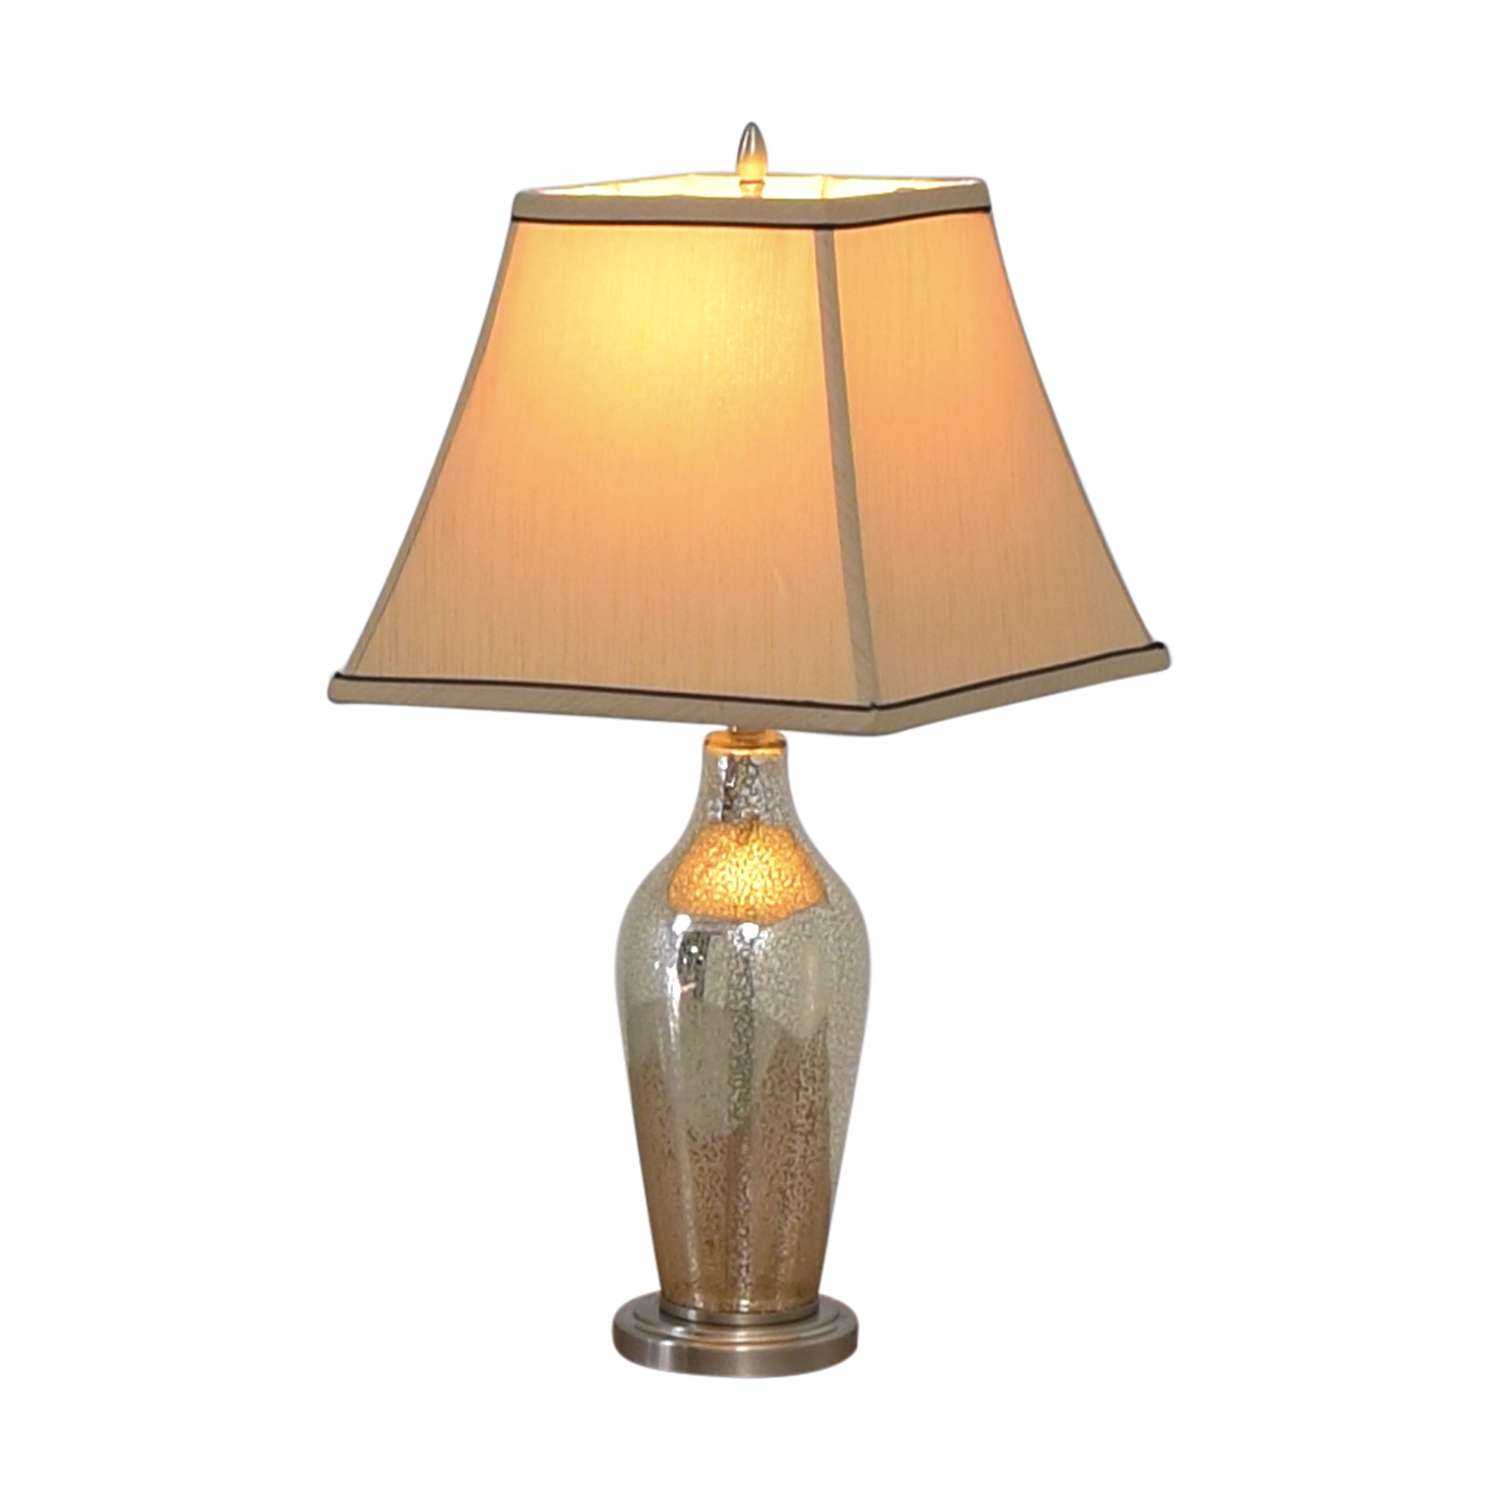 75% OFF - Hampton Bay Hampton Bay Glass Table Lamp / Decor